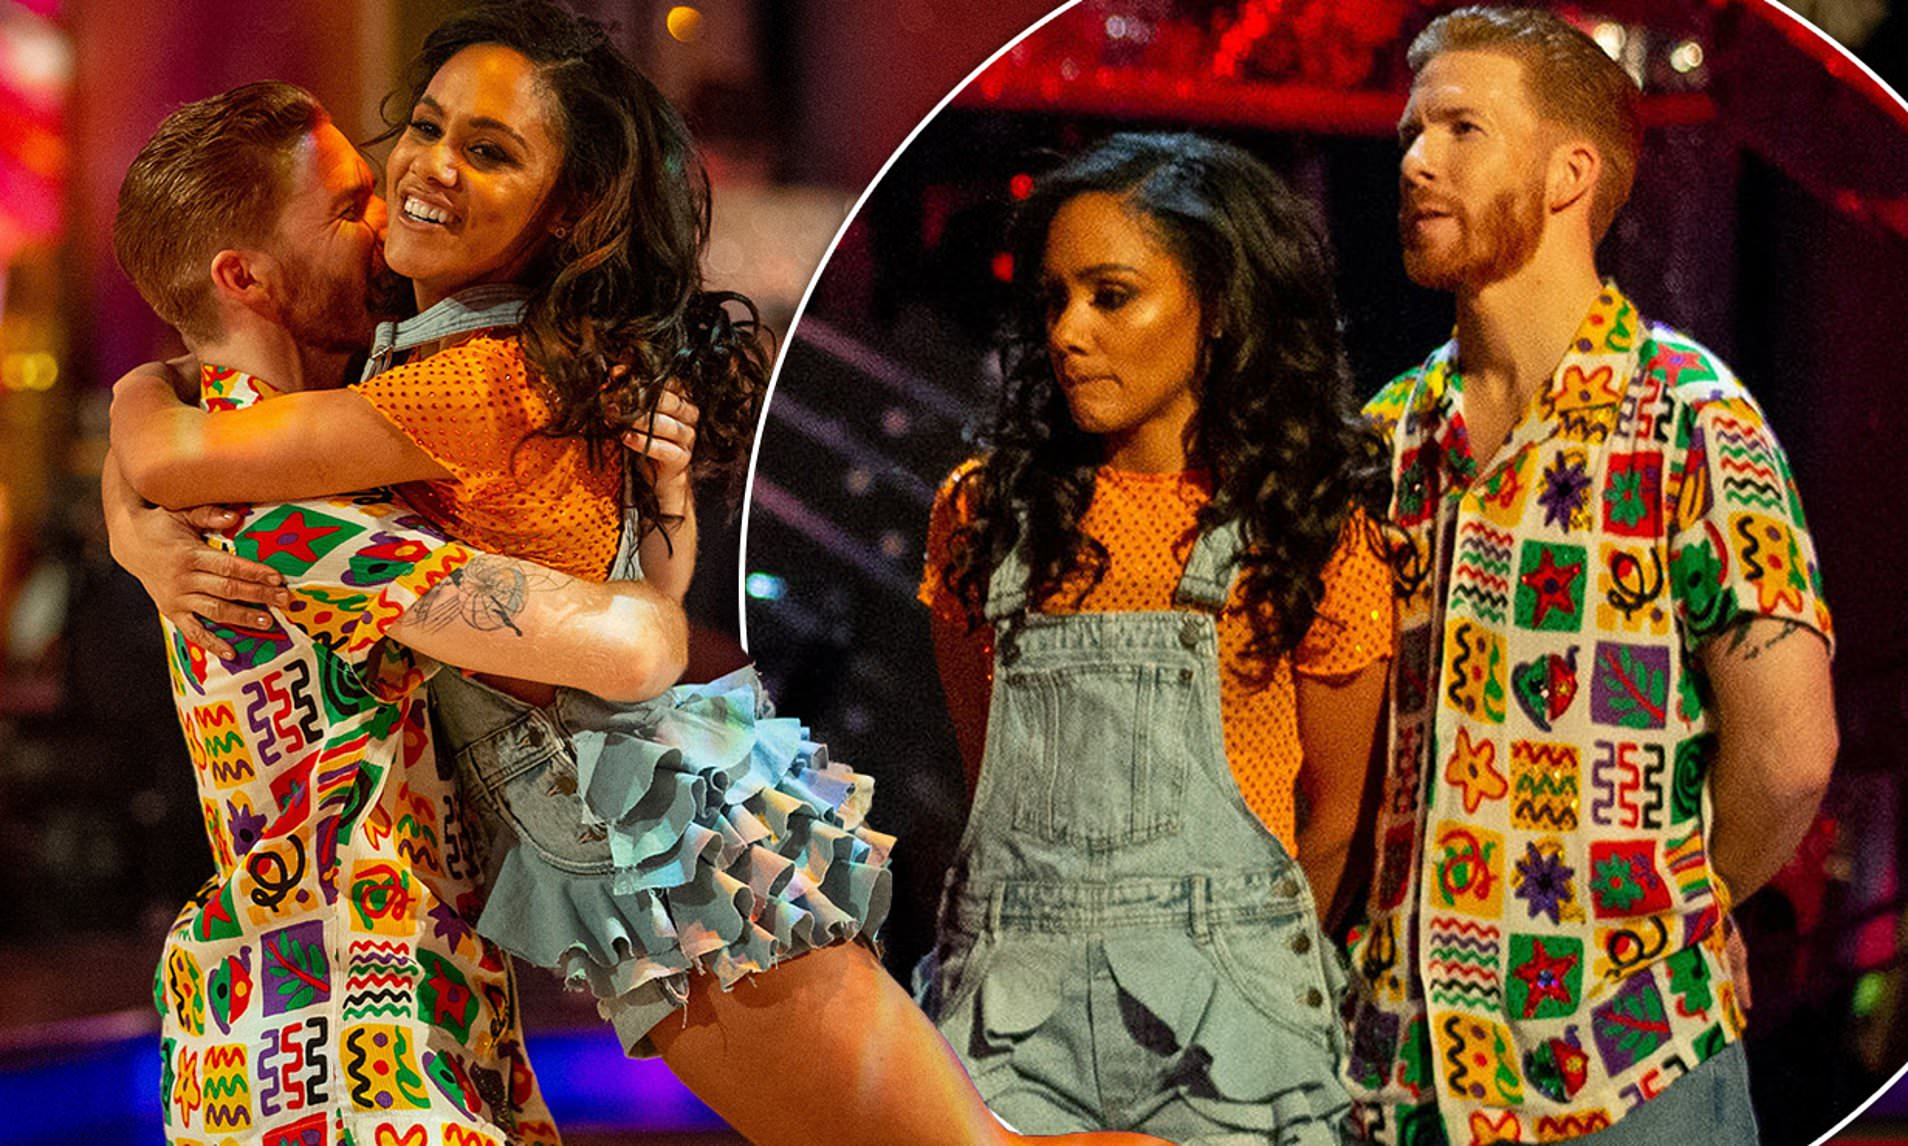 Strictly Come Dancing: Viewers brand show a 'FIX' as Alex Scott and partner Neil Jones are sent home after technical glitch causes voting problems